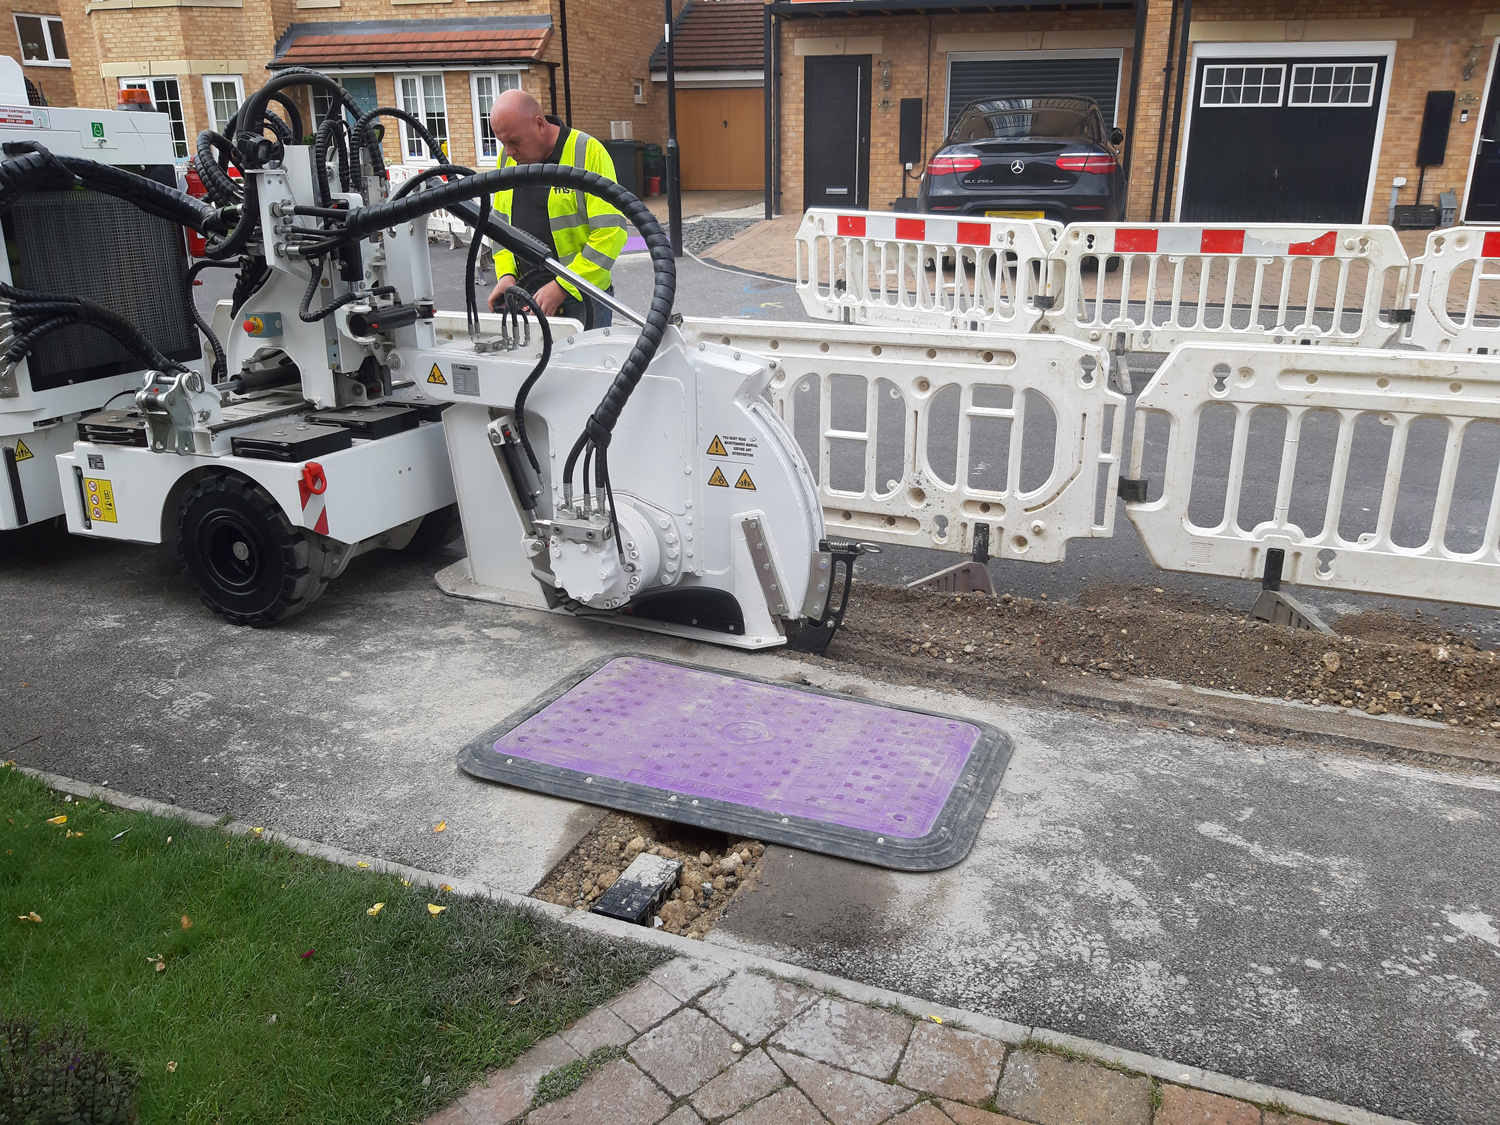 Tesmec SC4P Compact-sized Wheeled Trencher for Optic Fiber